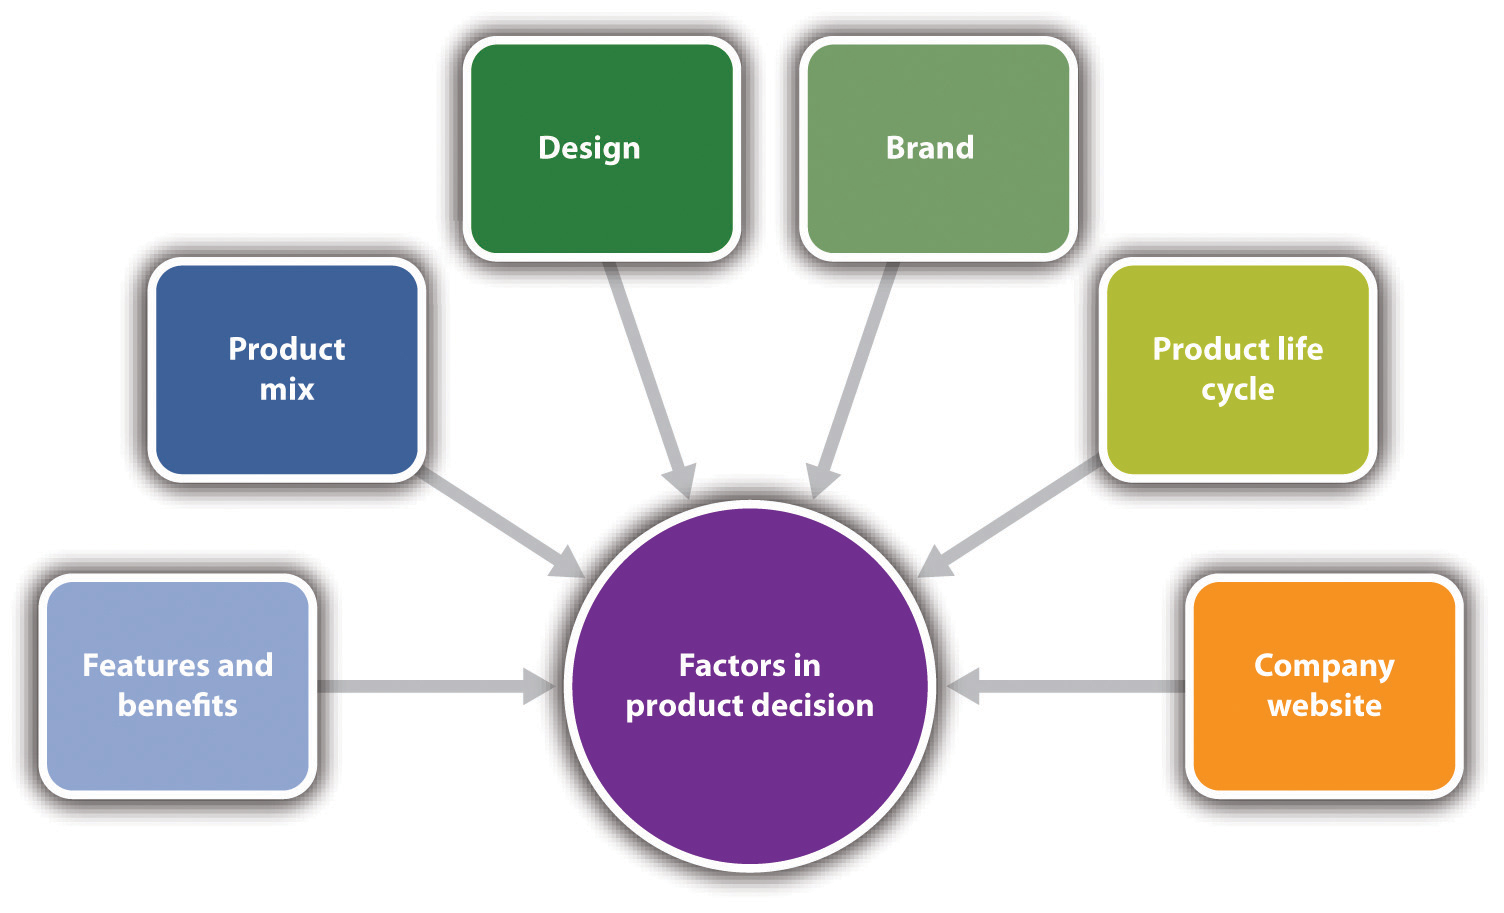 Marketing strategy and product for Product design services